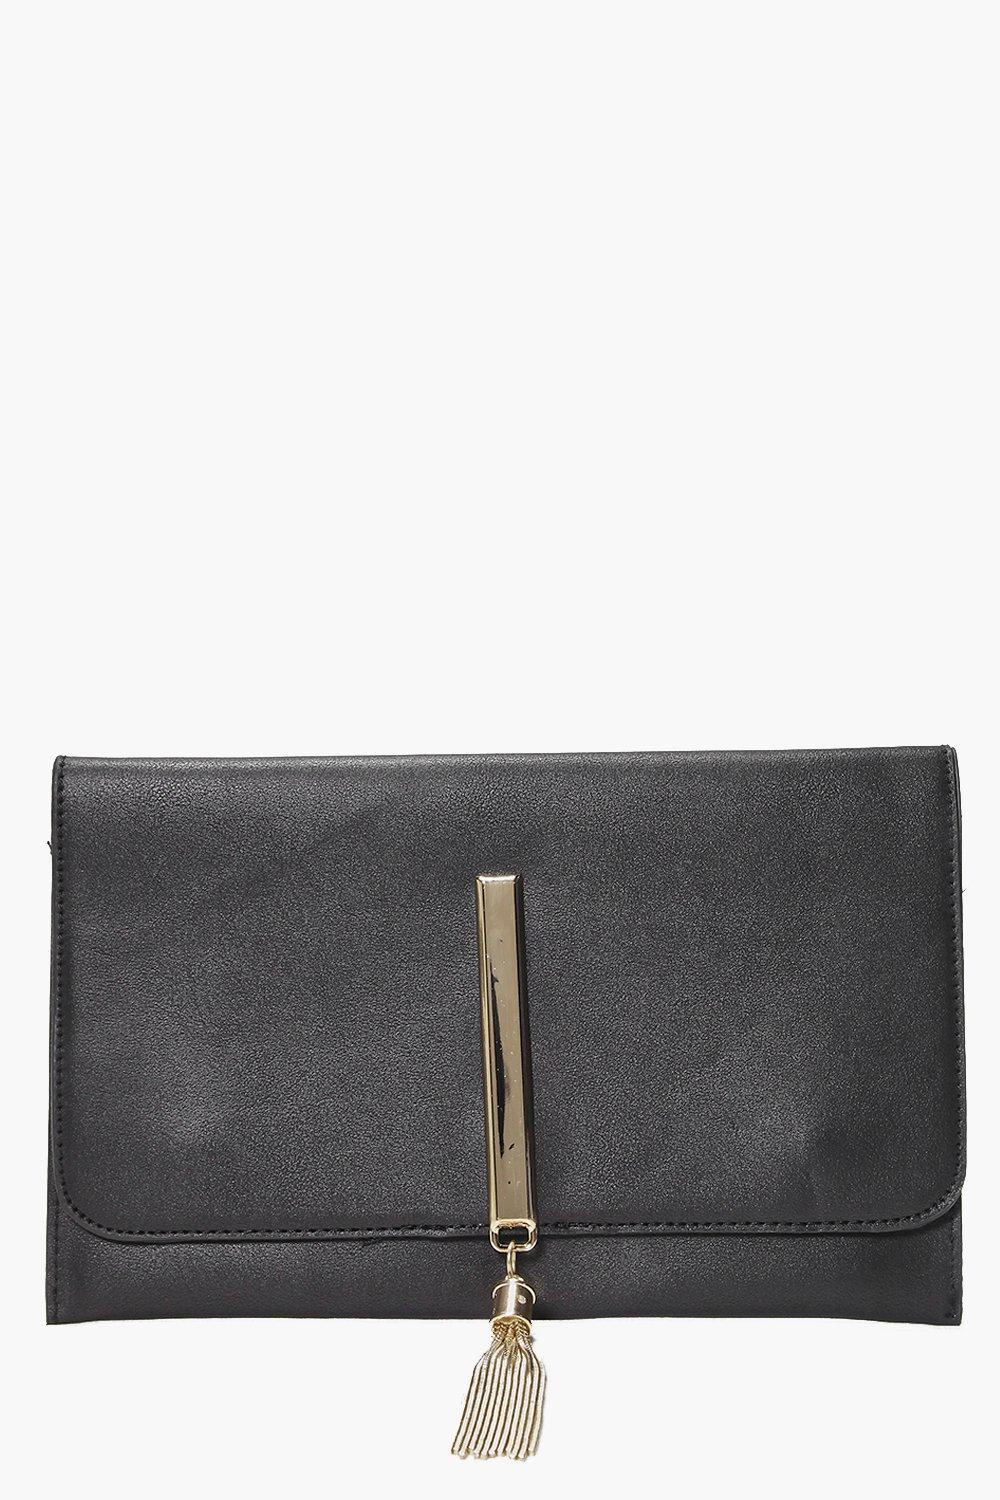 Metal Tassel Clutch Bag black